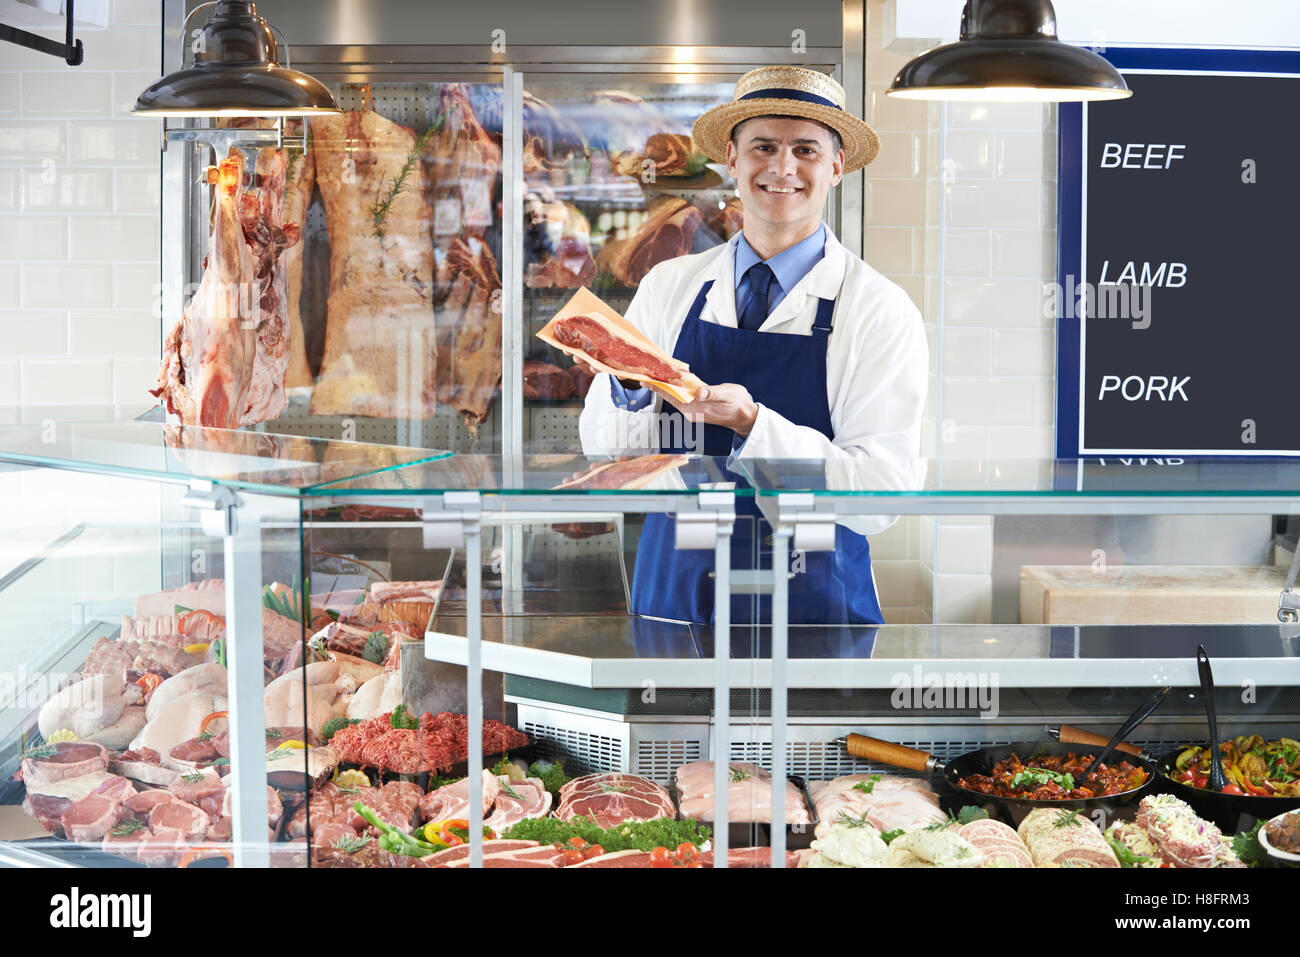 Portrait Of Butcher Standing Behind Counter - Stock Image